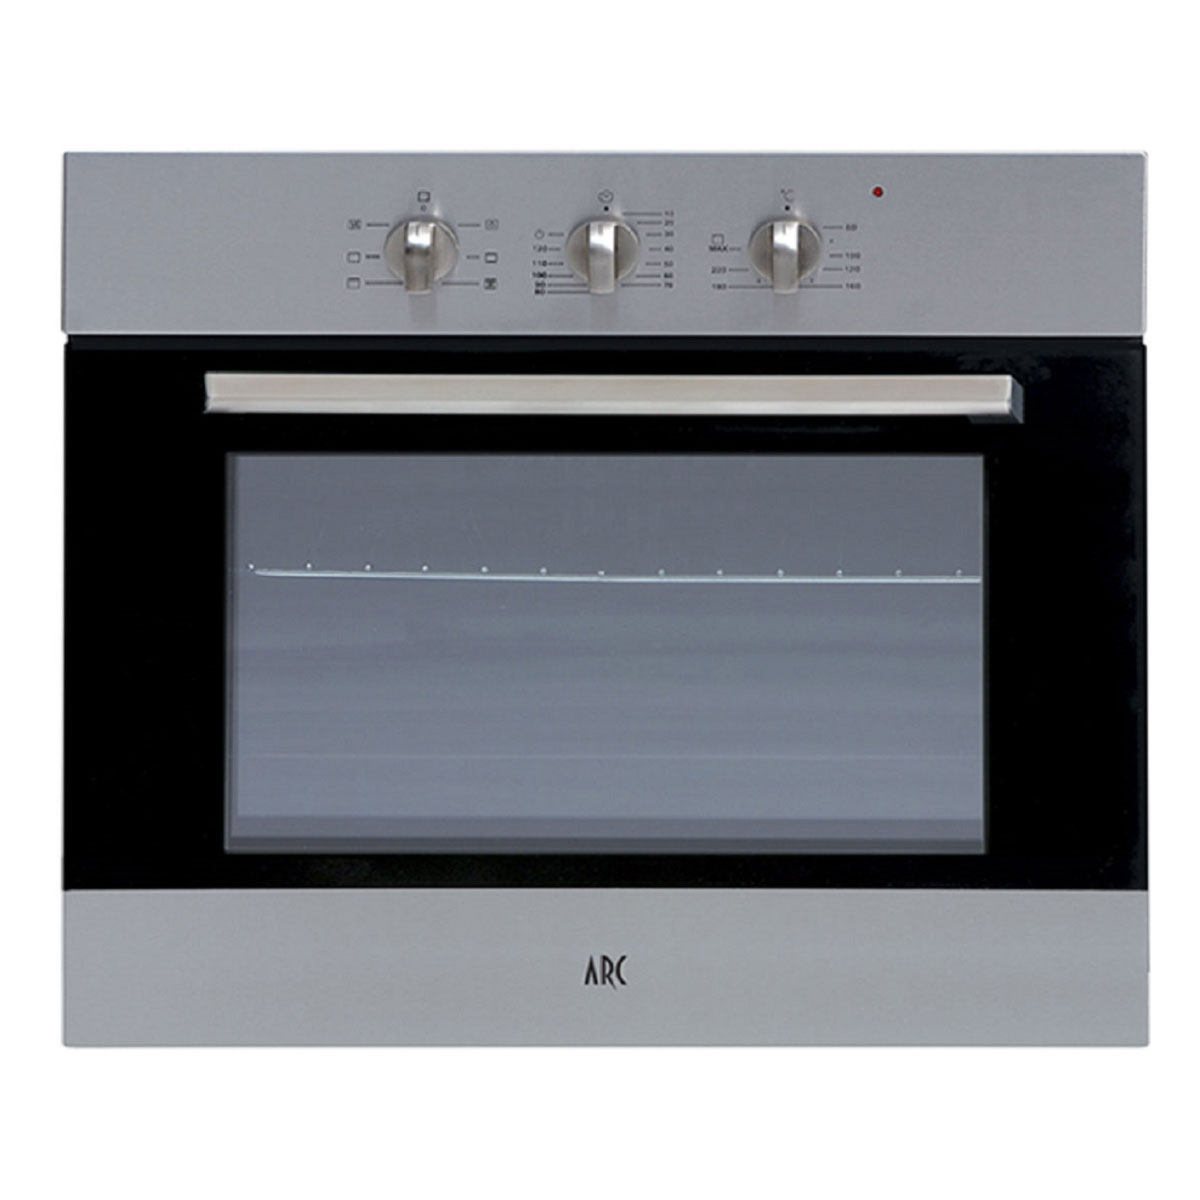 arc oven how to turn on